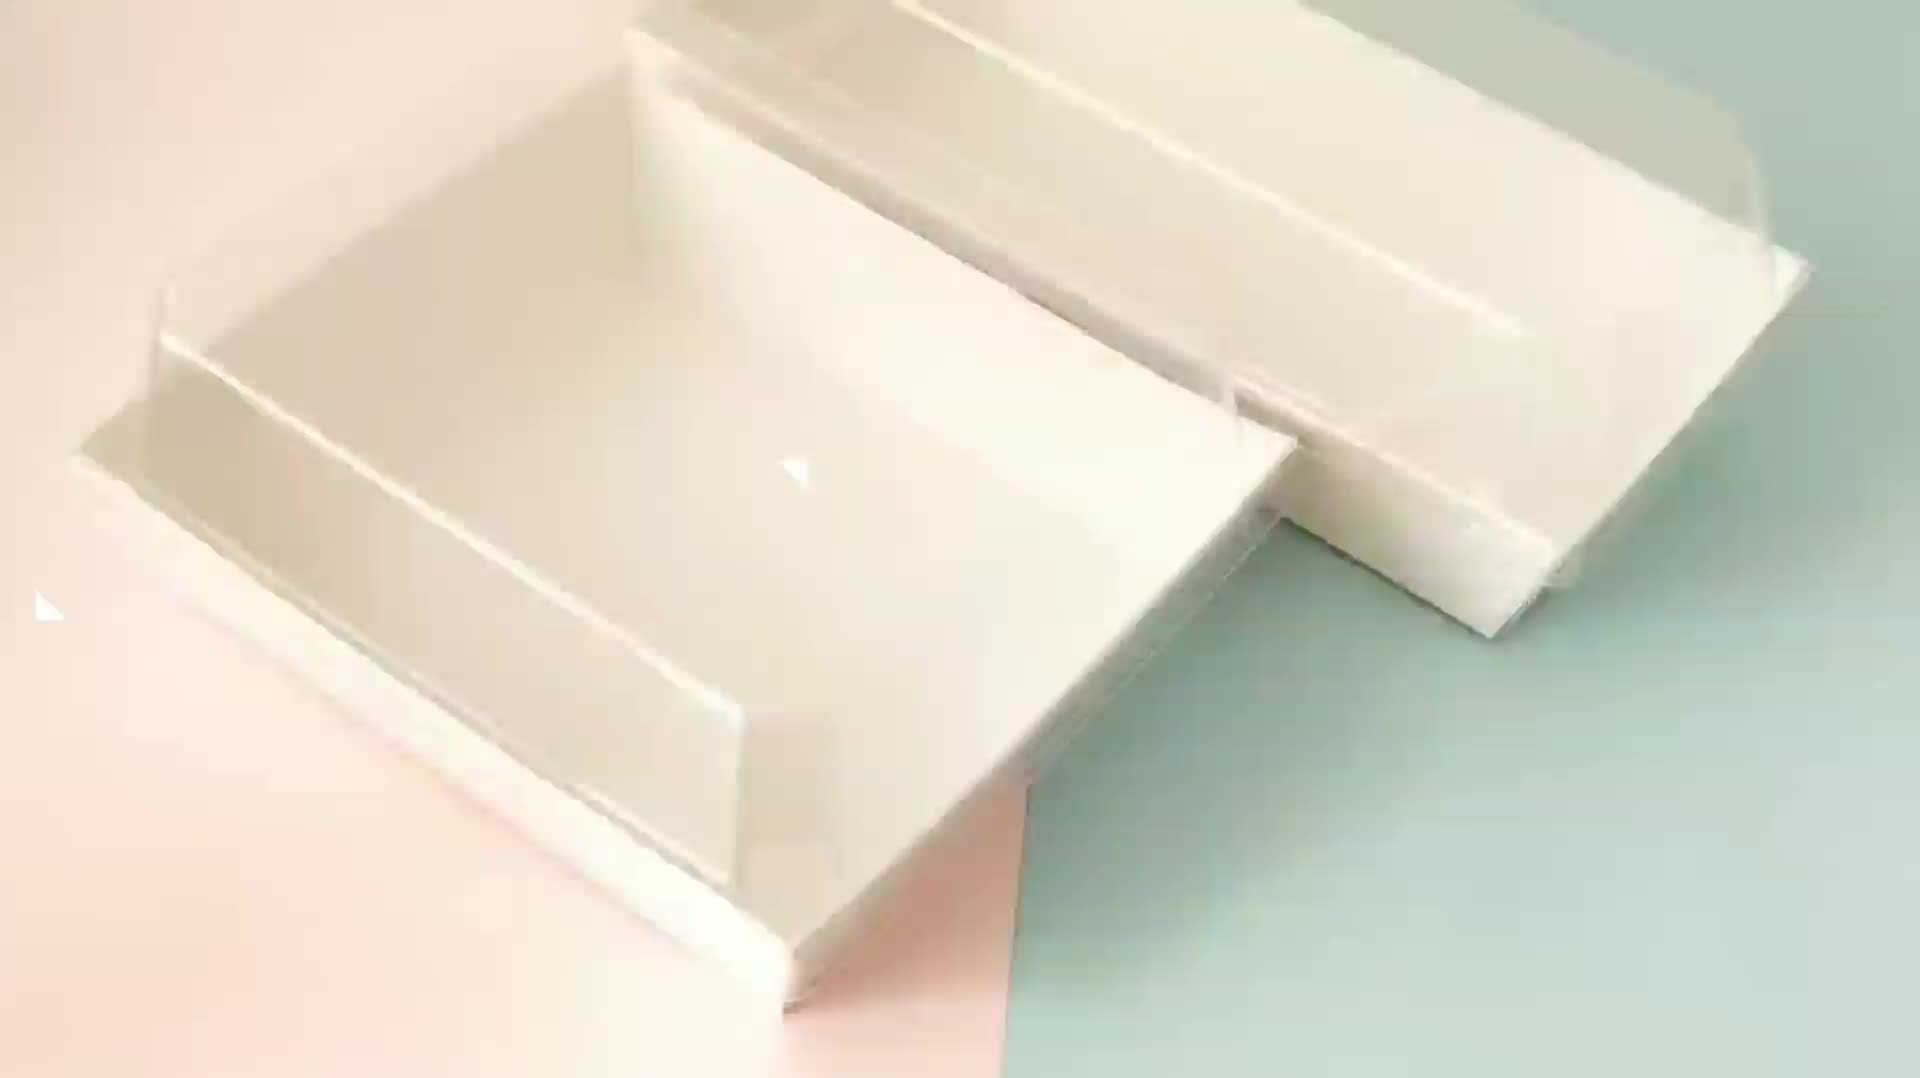 Accept custom white baking food restaurant takeout Hamburger box  cakes and pastries packaging sandwich doughnut box for pastry